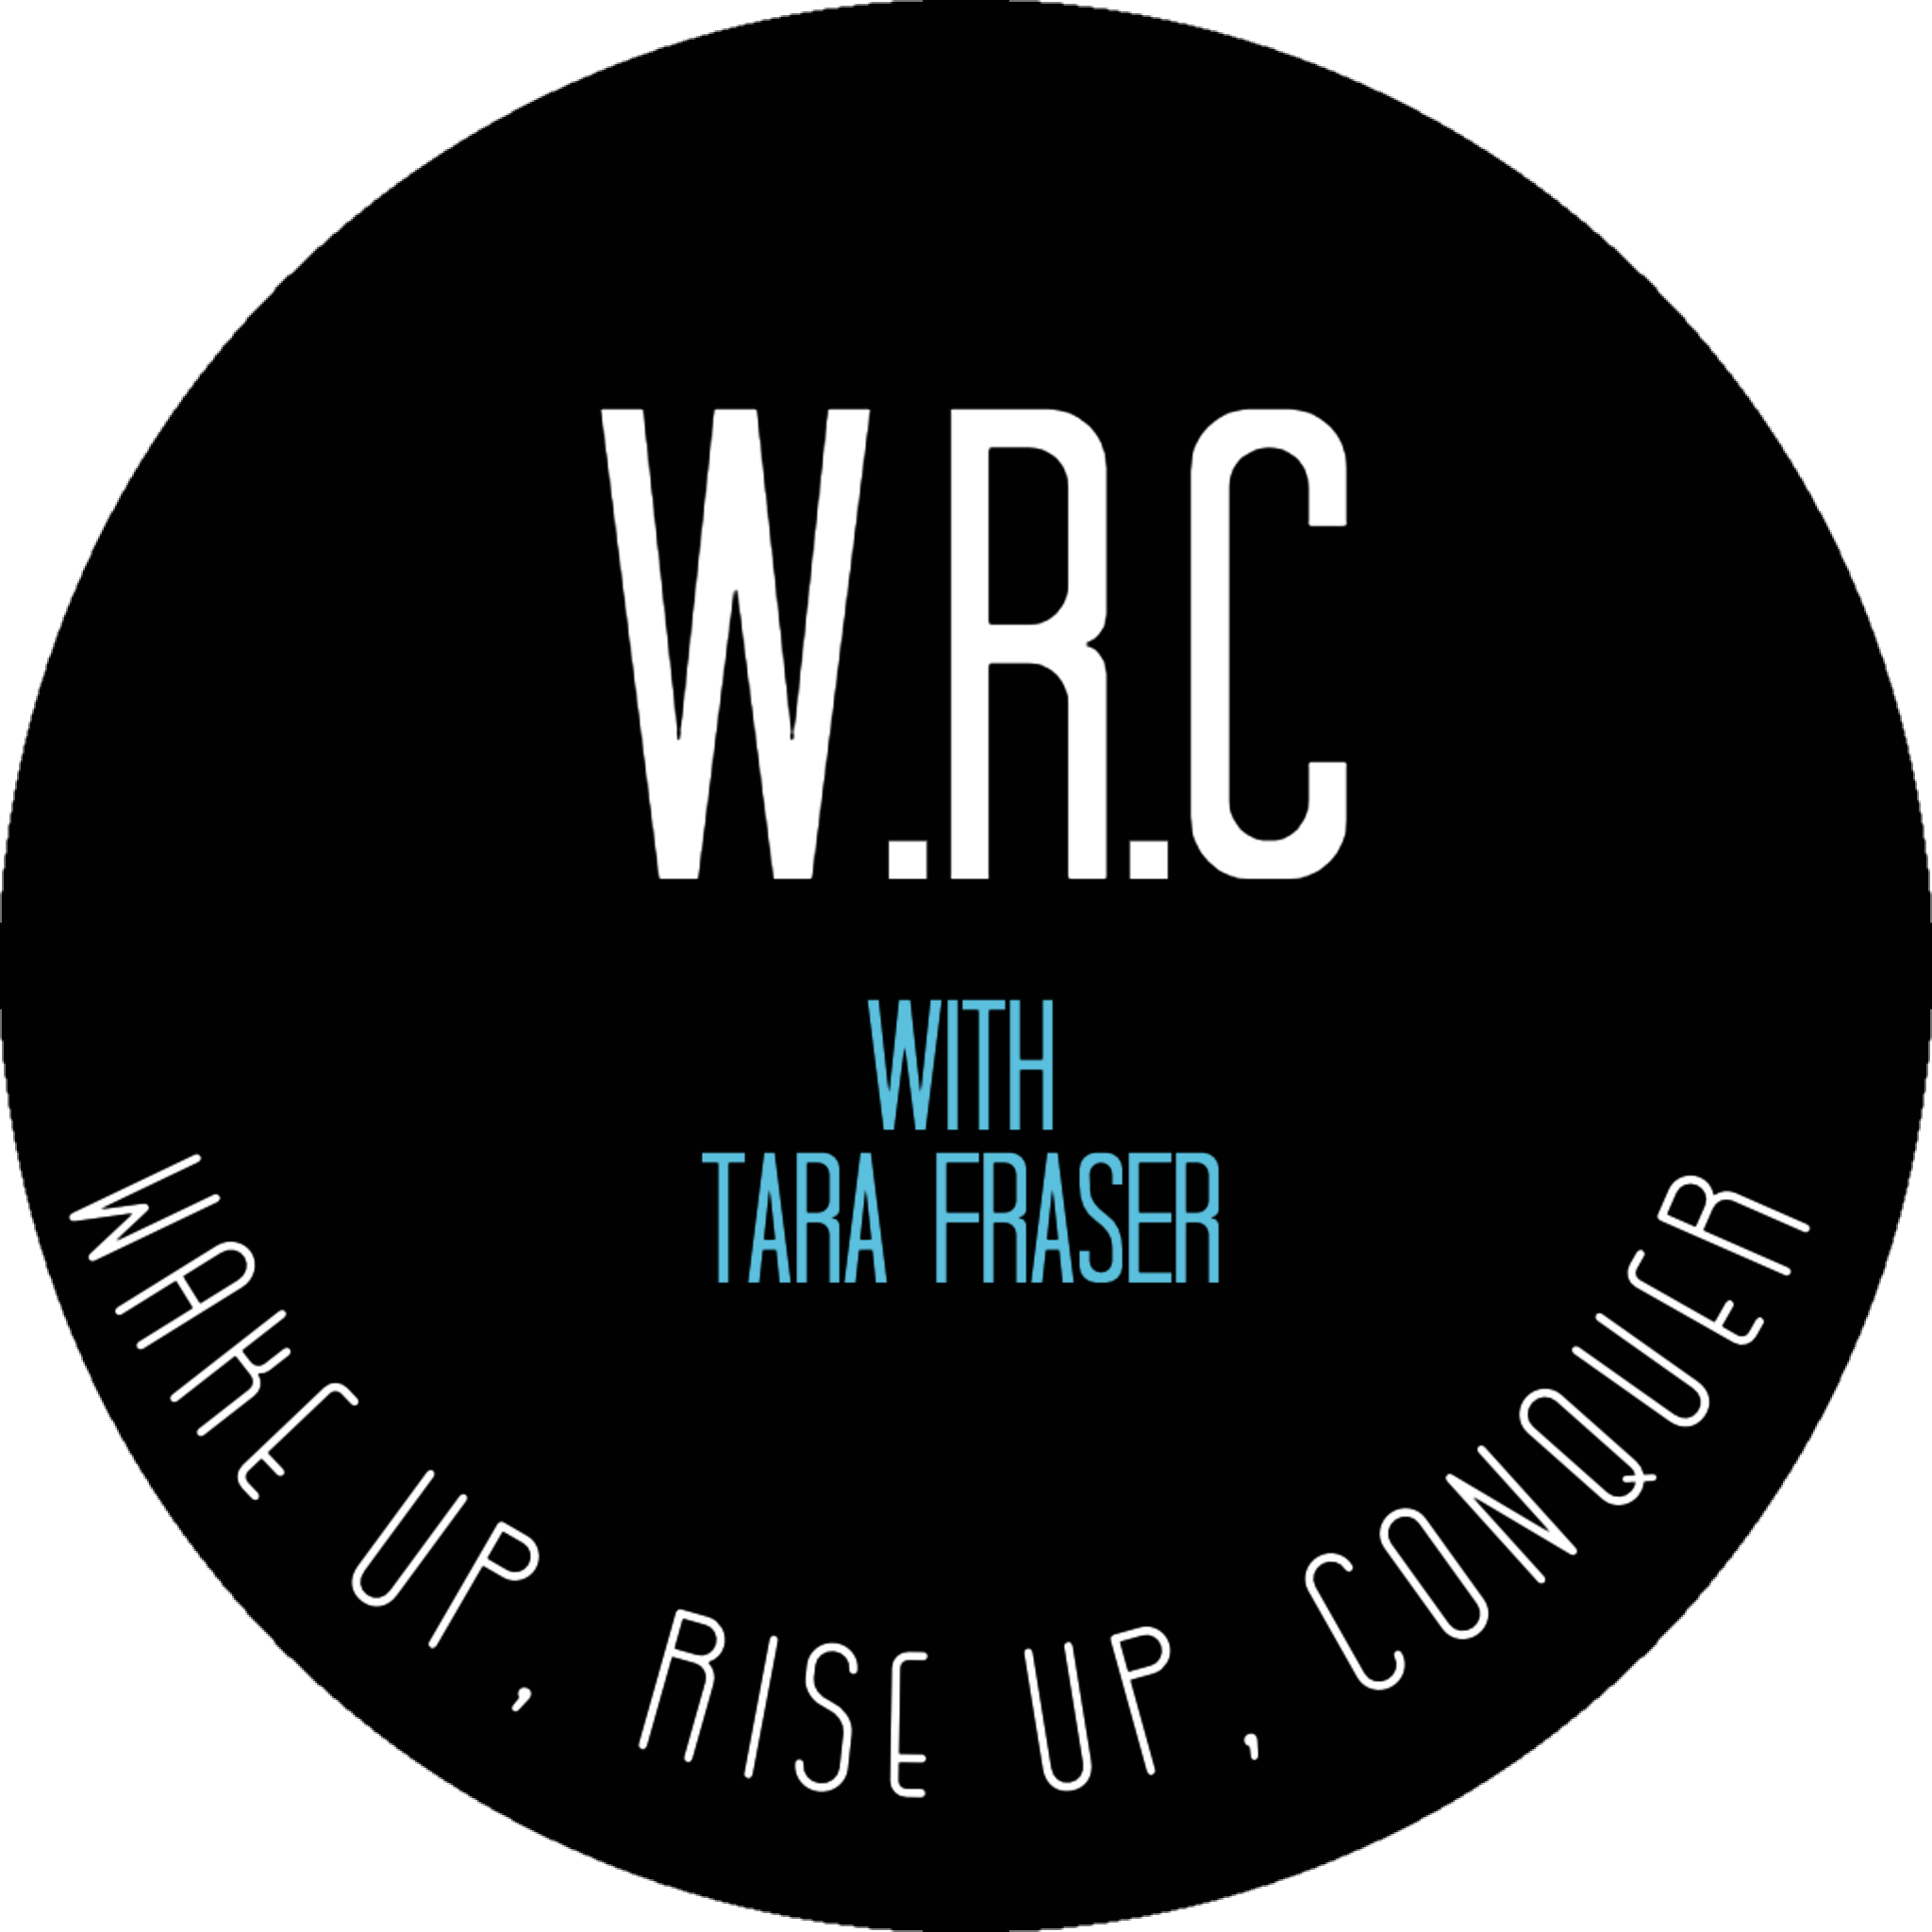 Wake up, Rise up, Conquer